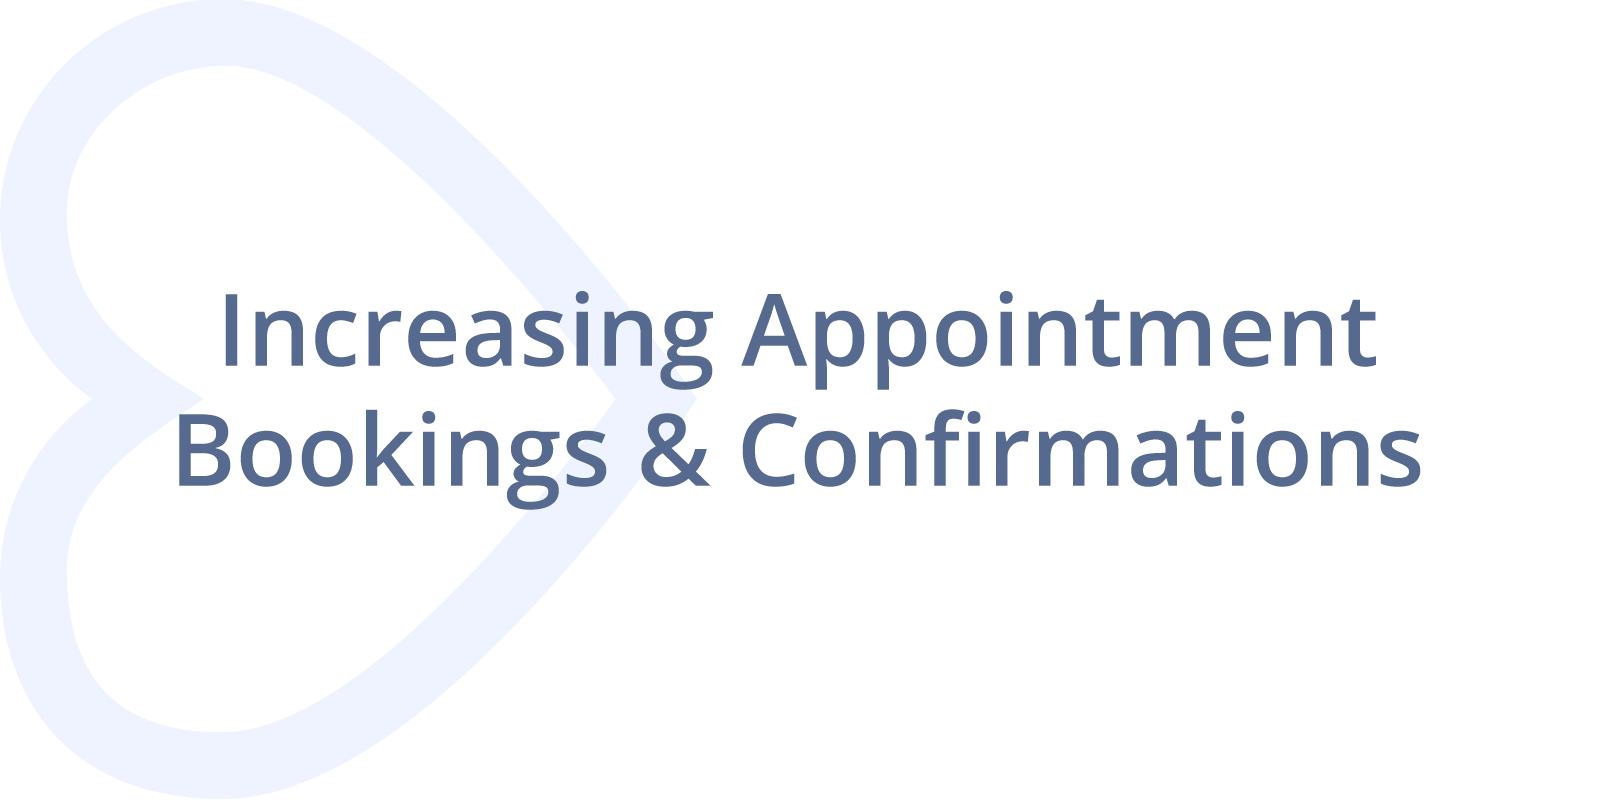 Increasing Appointment Bookings & Confirmations